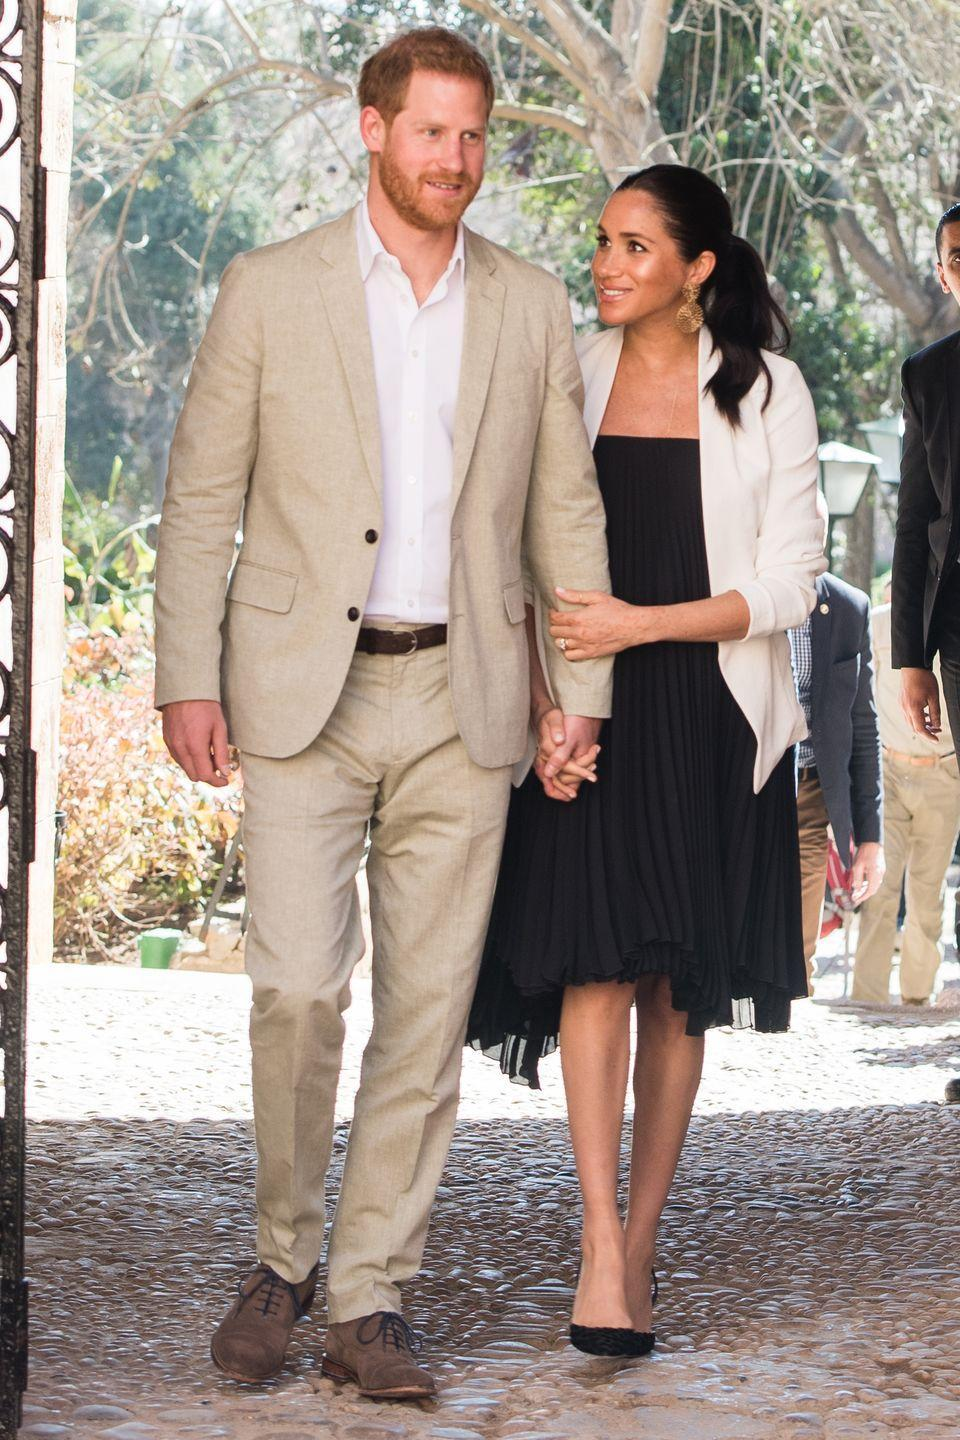 <p>Harry and Meghan walked hand in hand as they visited the Andalusian Gardens in Morocco. </p>